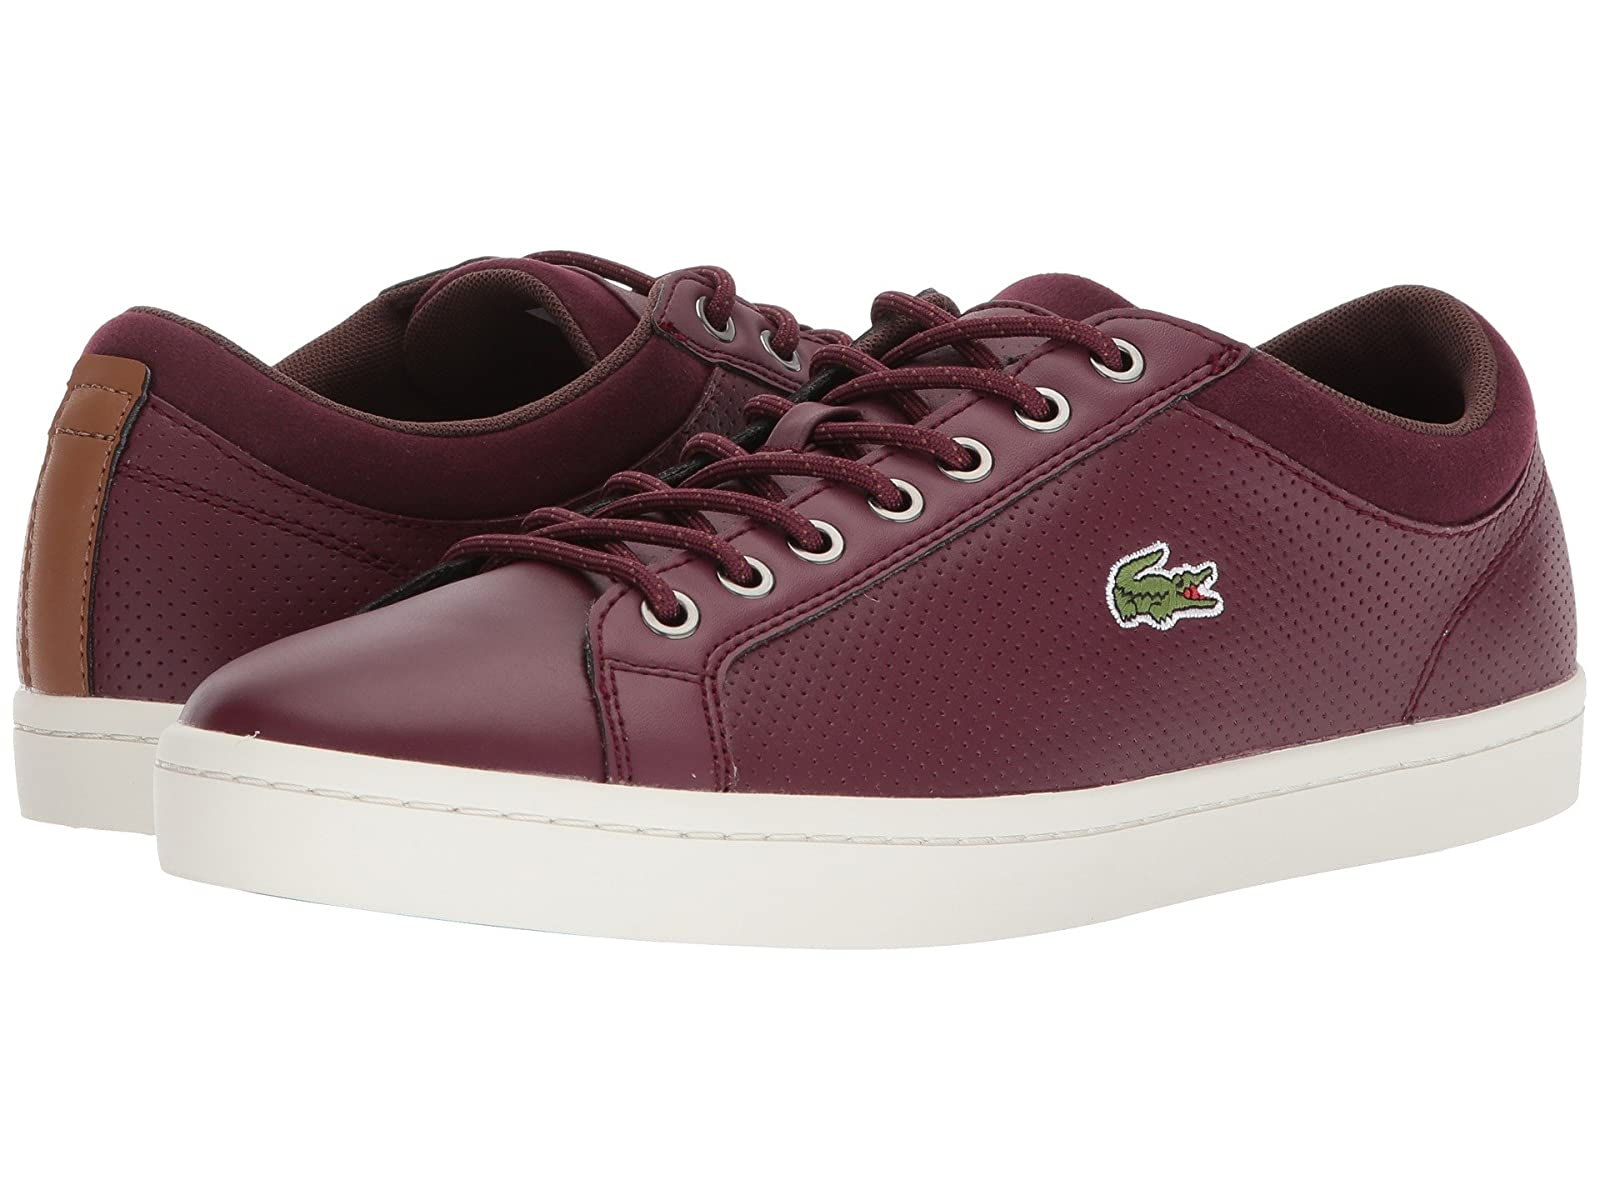 Lacoste Straightset Sp 317 1 CamAtmospheric grades have affordable shoes